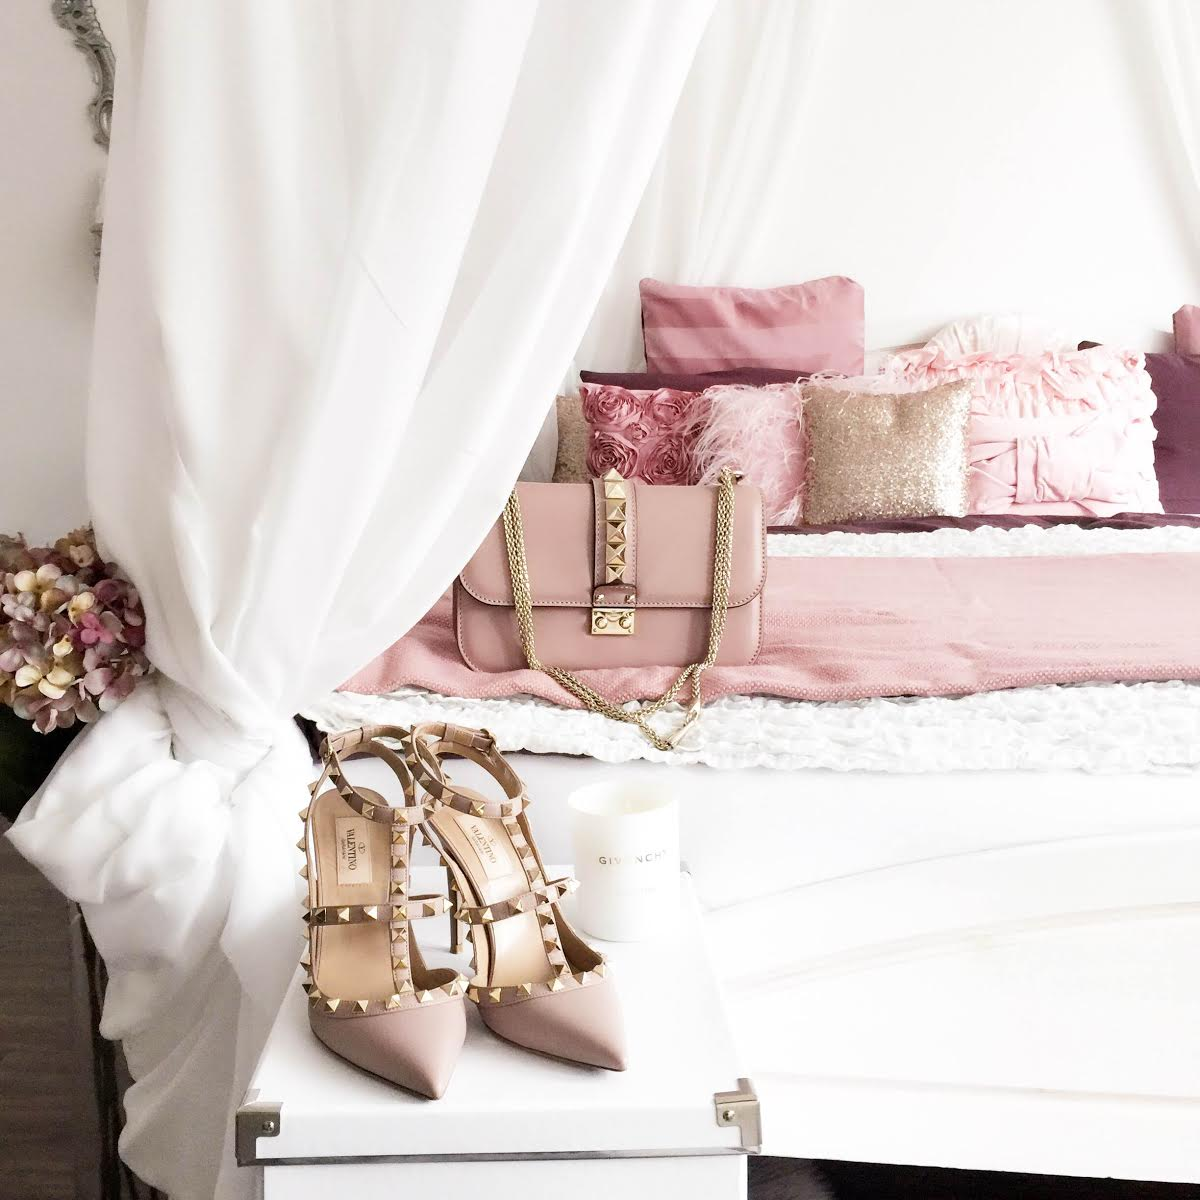 fashionhippieloves-bedroom-valentino-galm-lock-bag-rockstud-heels-nude